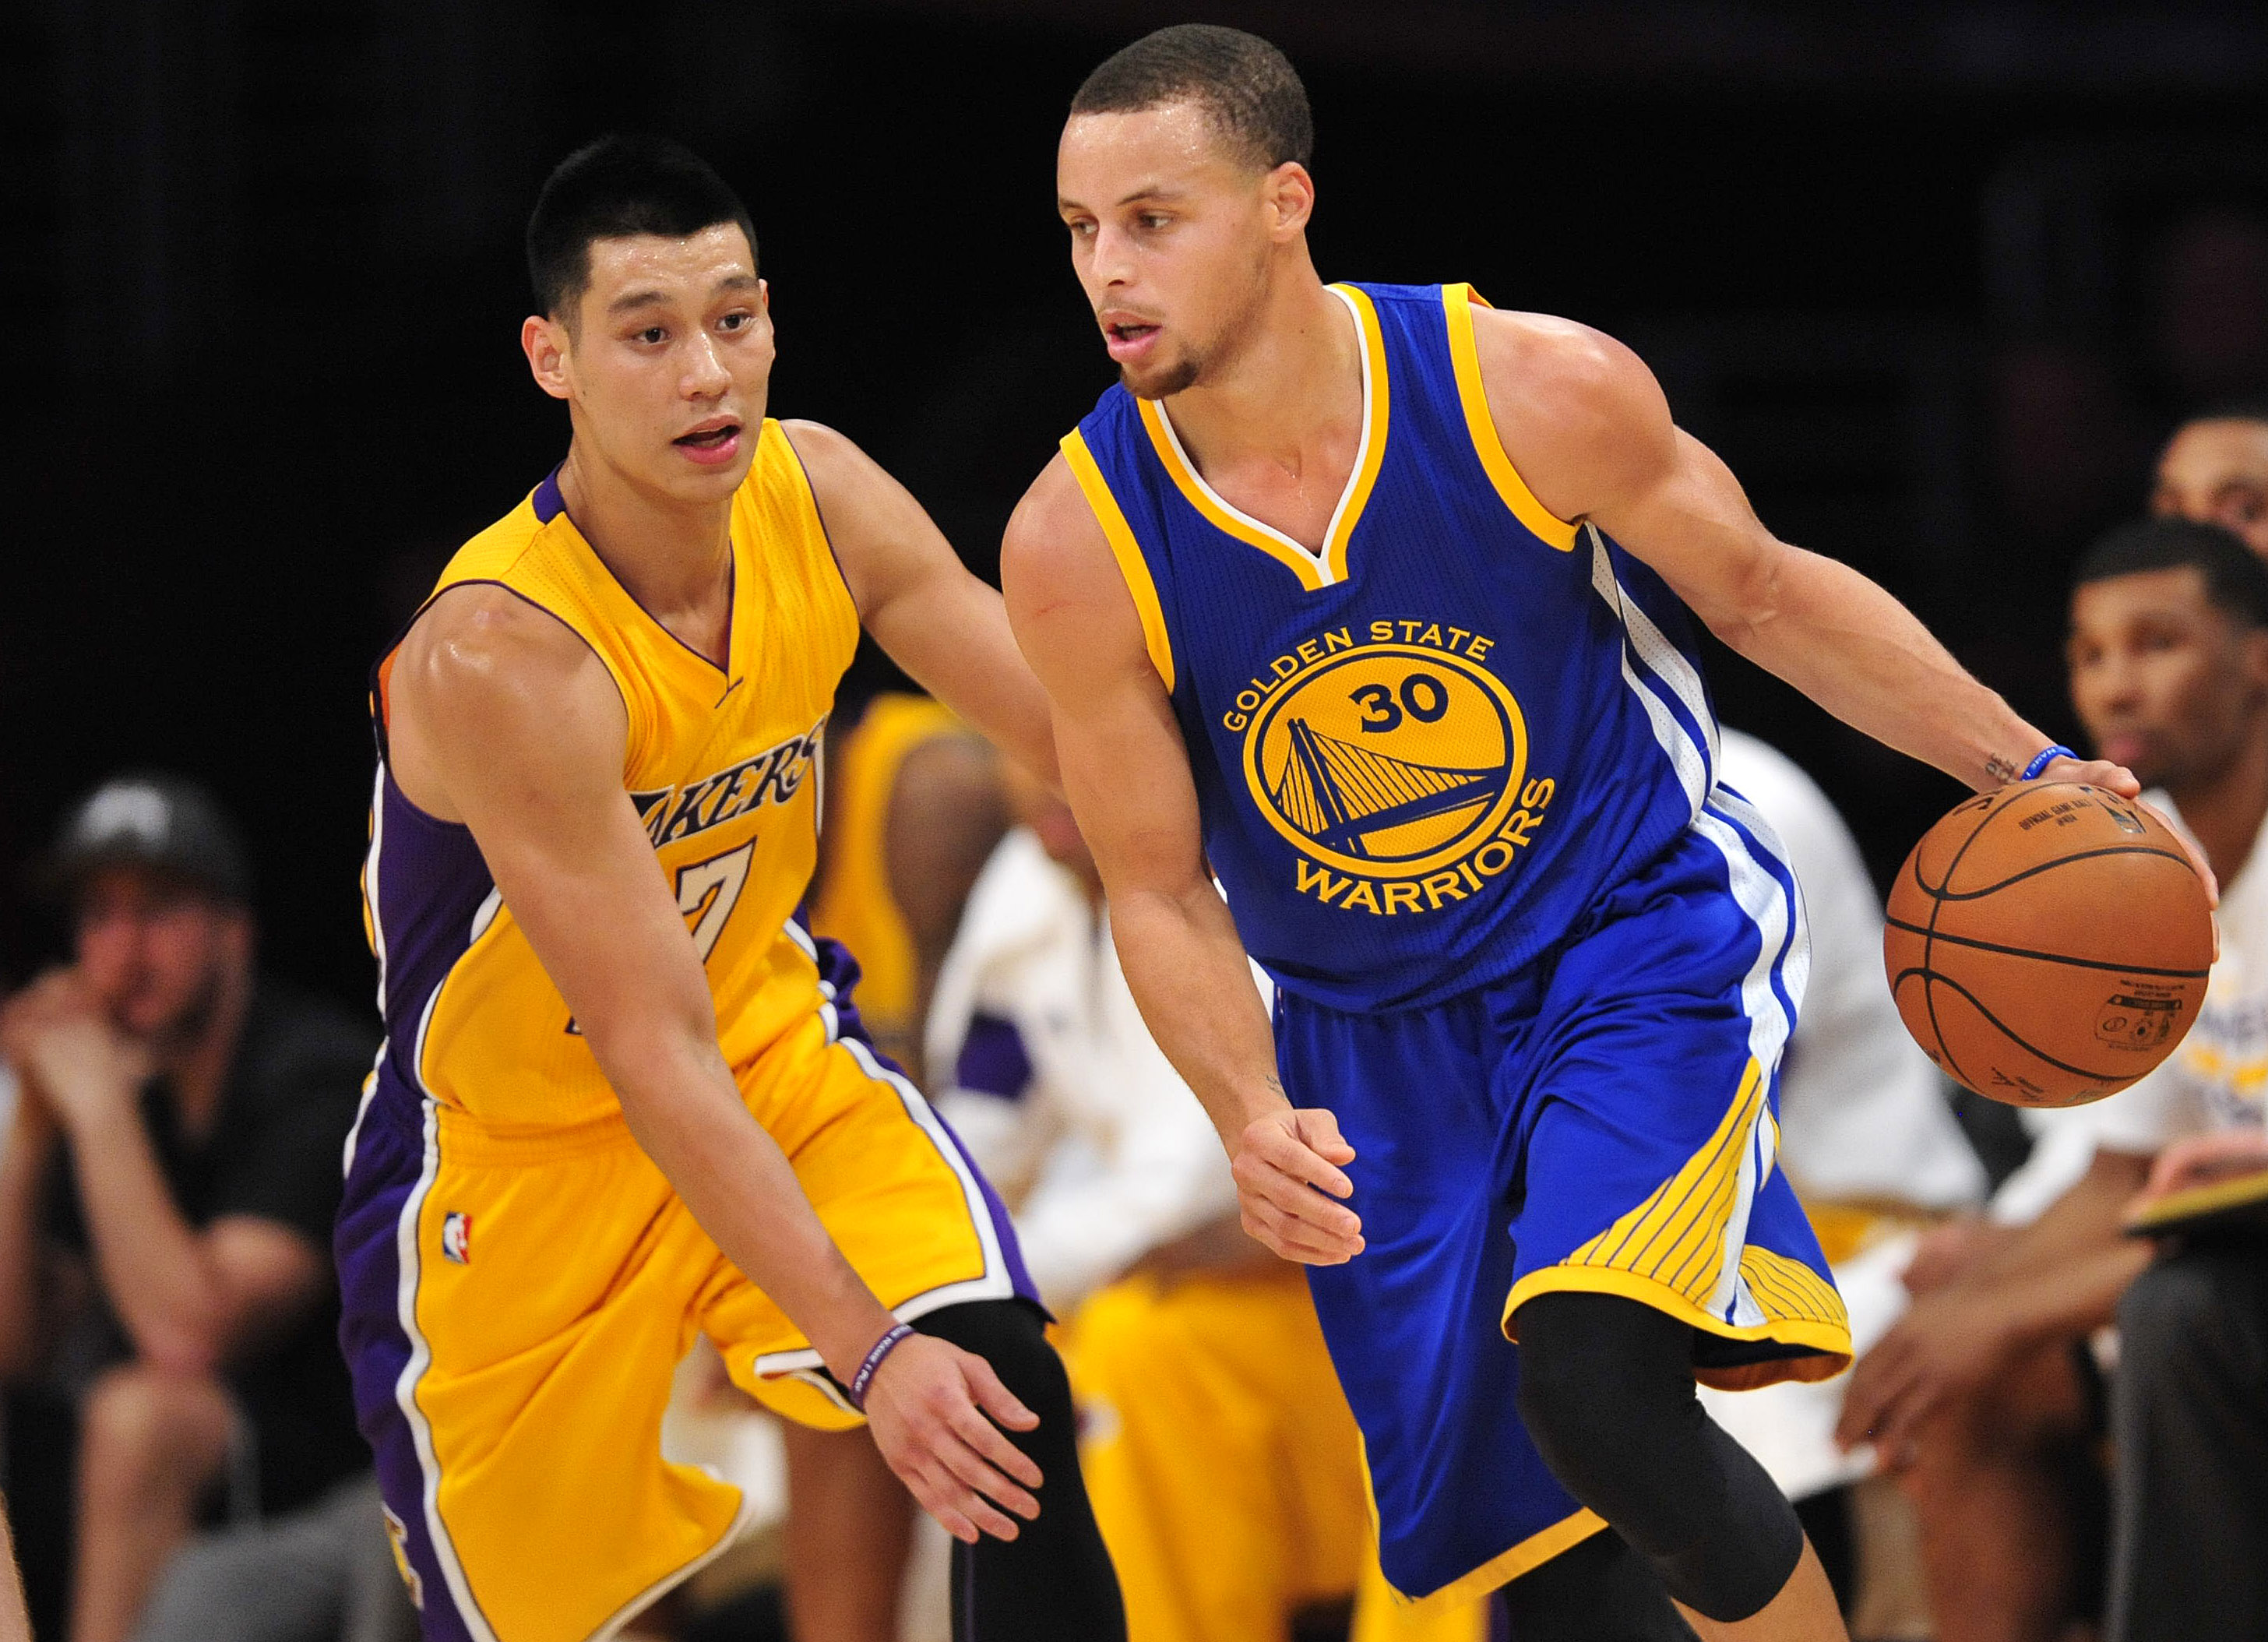 Jeremy Lin with future(?) teammate Curry.